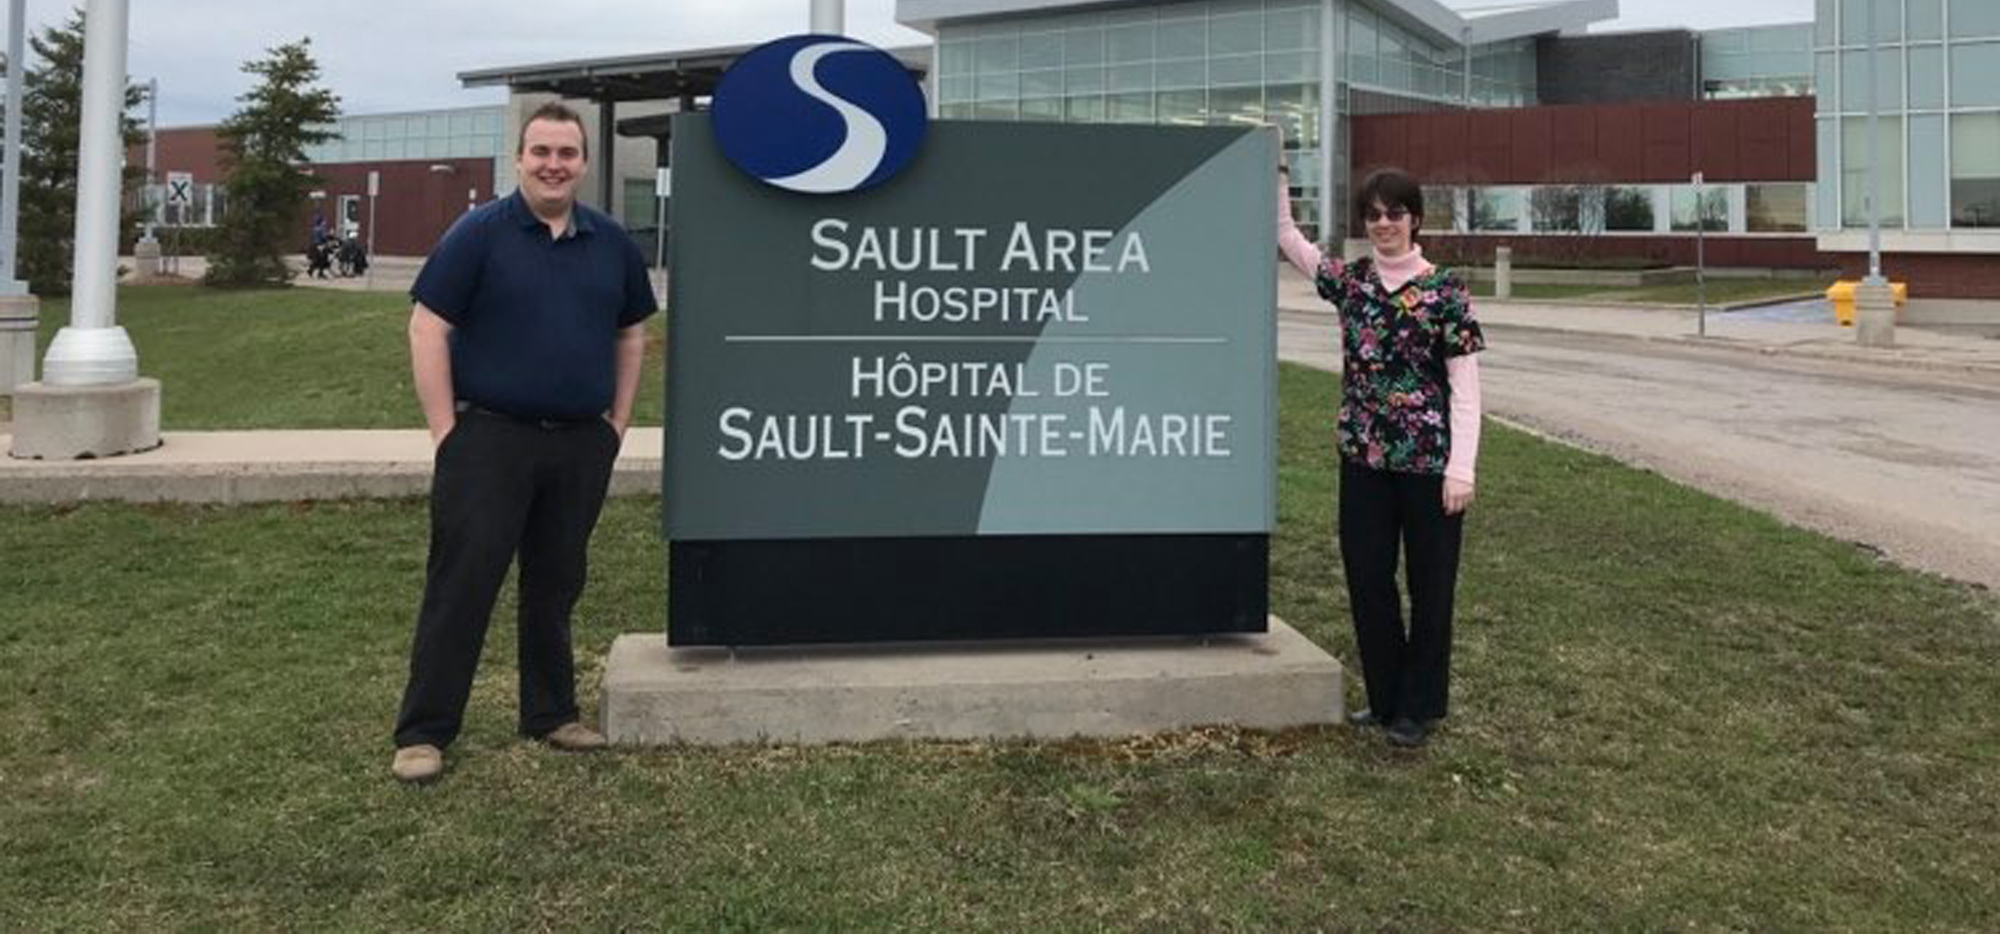 Nick and Krista standing next to a sign that says Sault Area Hospital